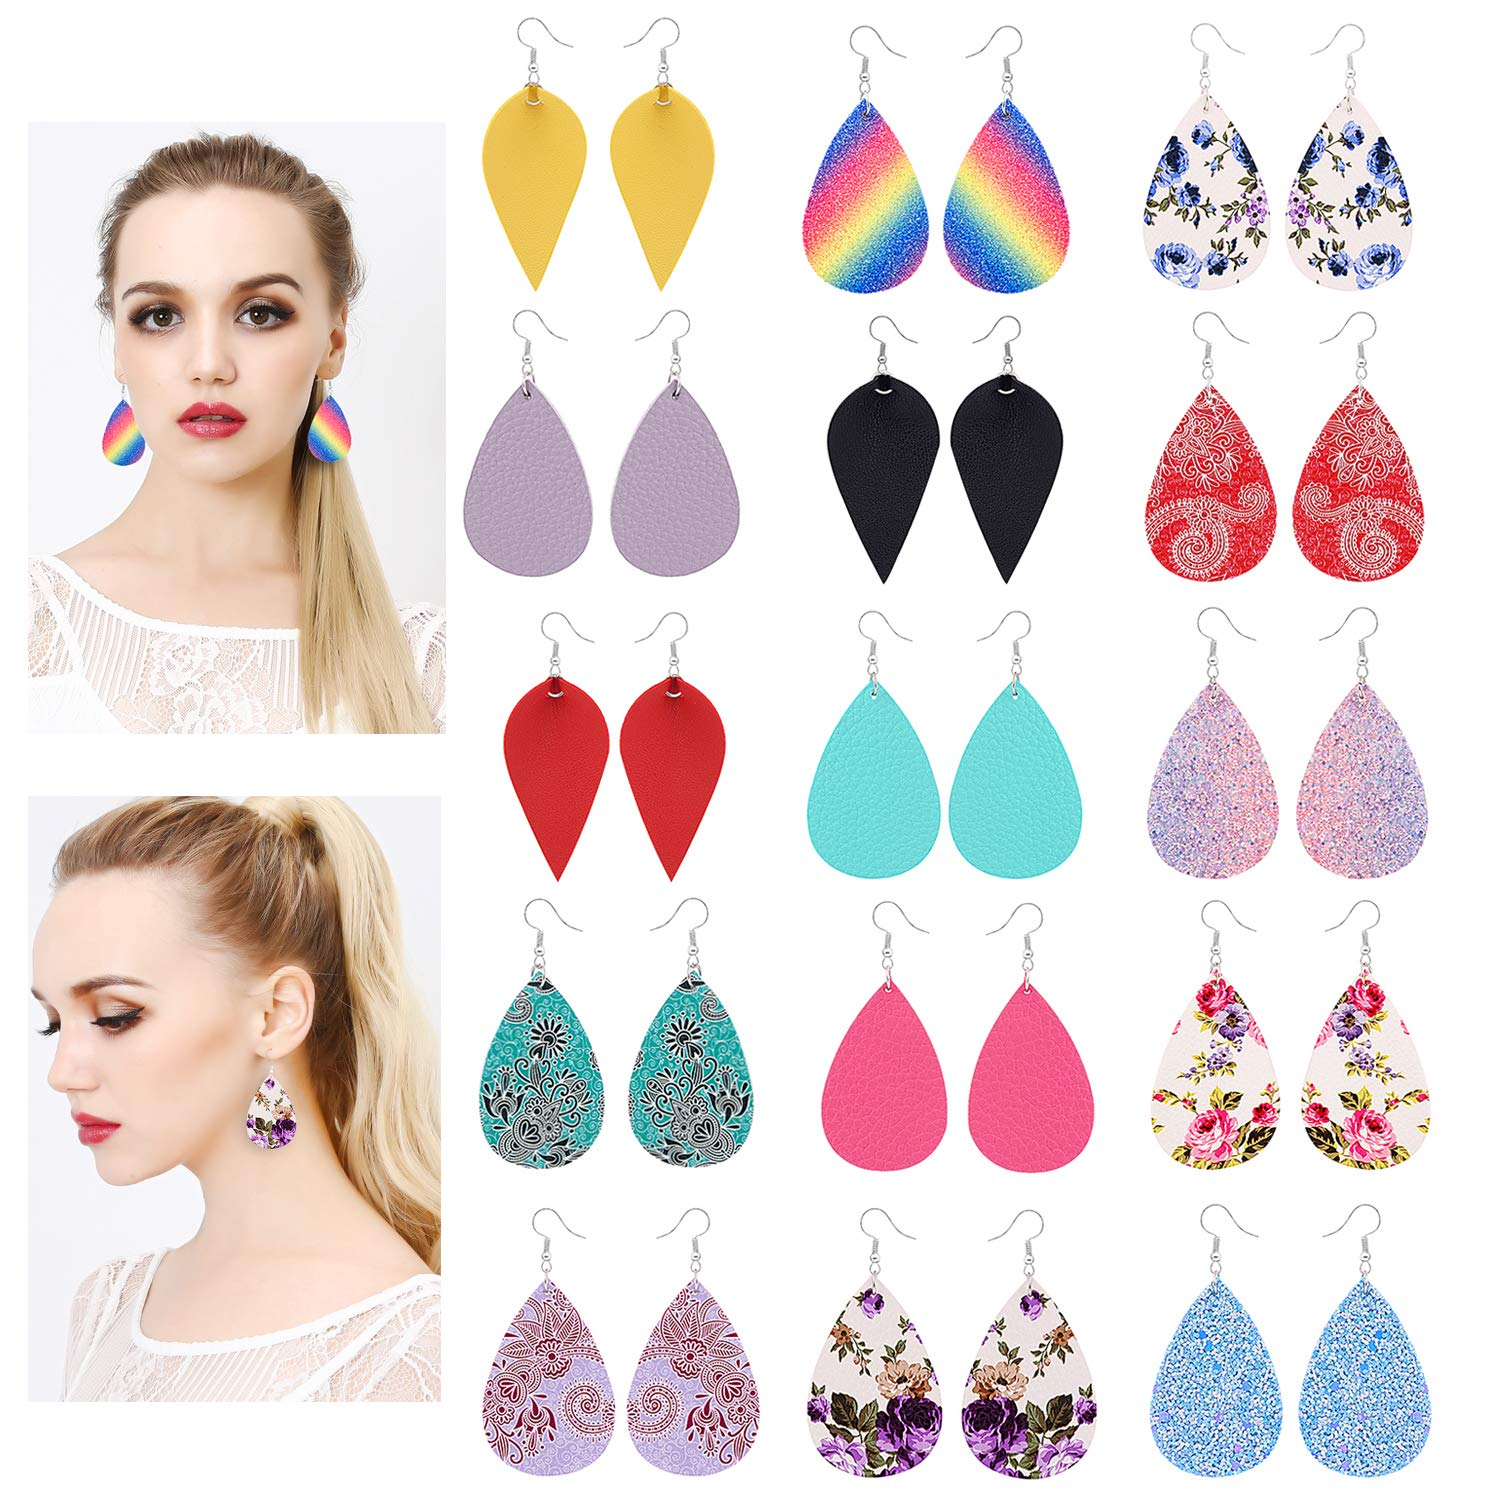 15 Pairs Petal Leather Earrings Antique Looking Faux Leather Teardrop Long Dangle Earrings Lightweight Leaf Red Yellow Pink Blue Handmade Floral Rainbow Print Drop Earrings Gift for Teens Girls Women luoyue